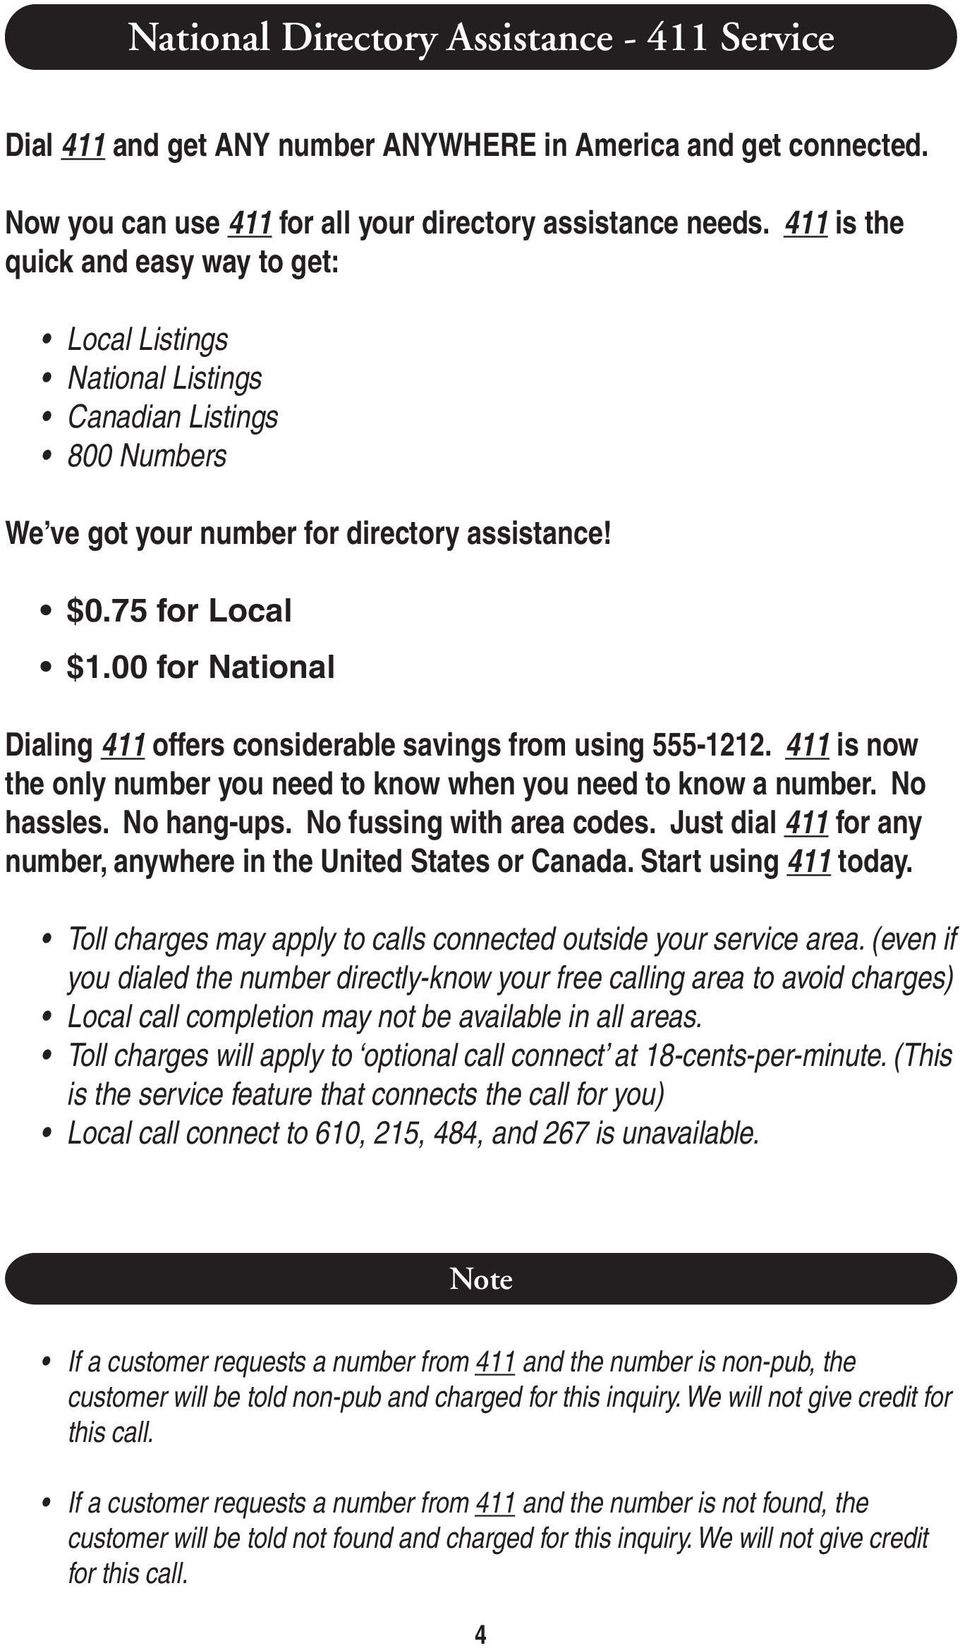 75 for Local $00 for National Dialing 411 offers considerable savings from using 555-121 411 is now the only number you need to know when you need to know a number. No hassles. No hang-ups.